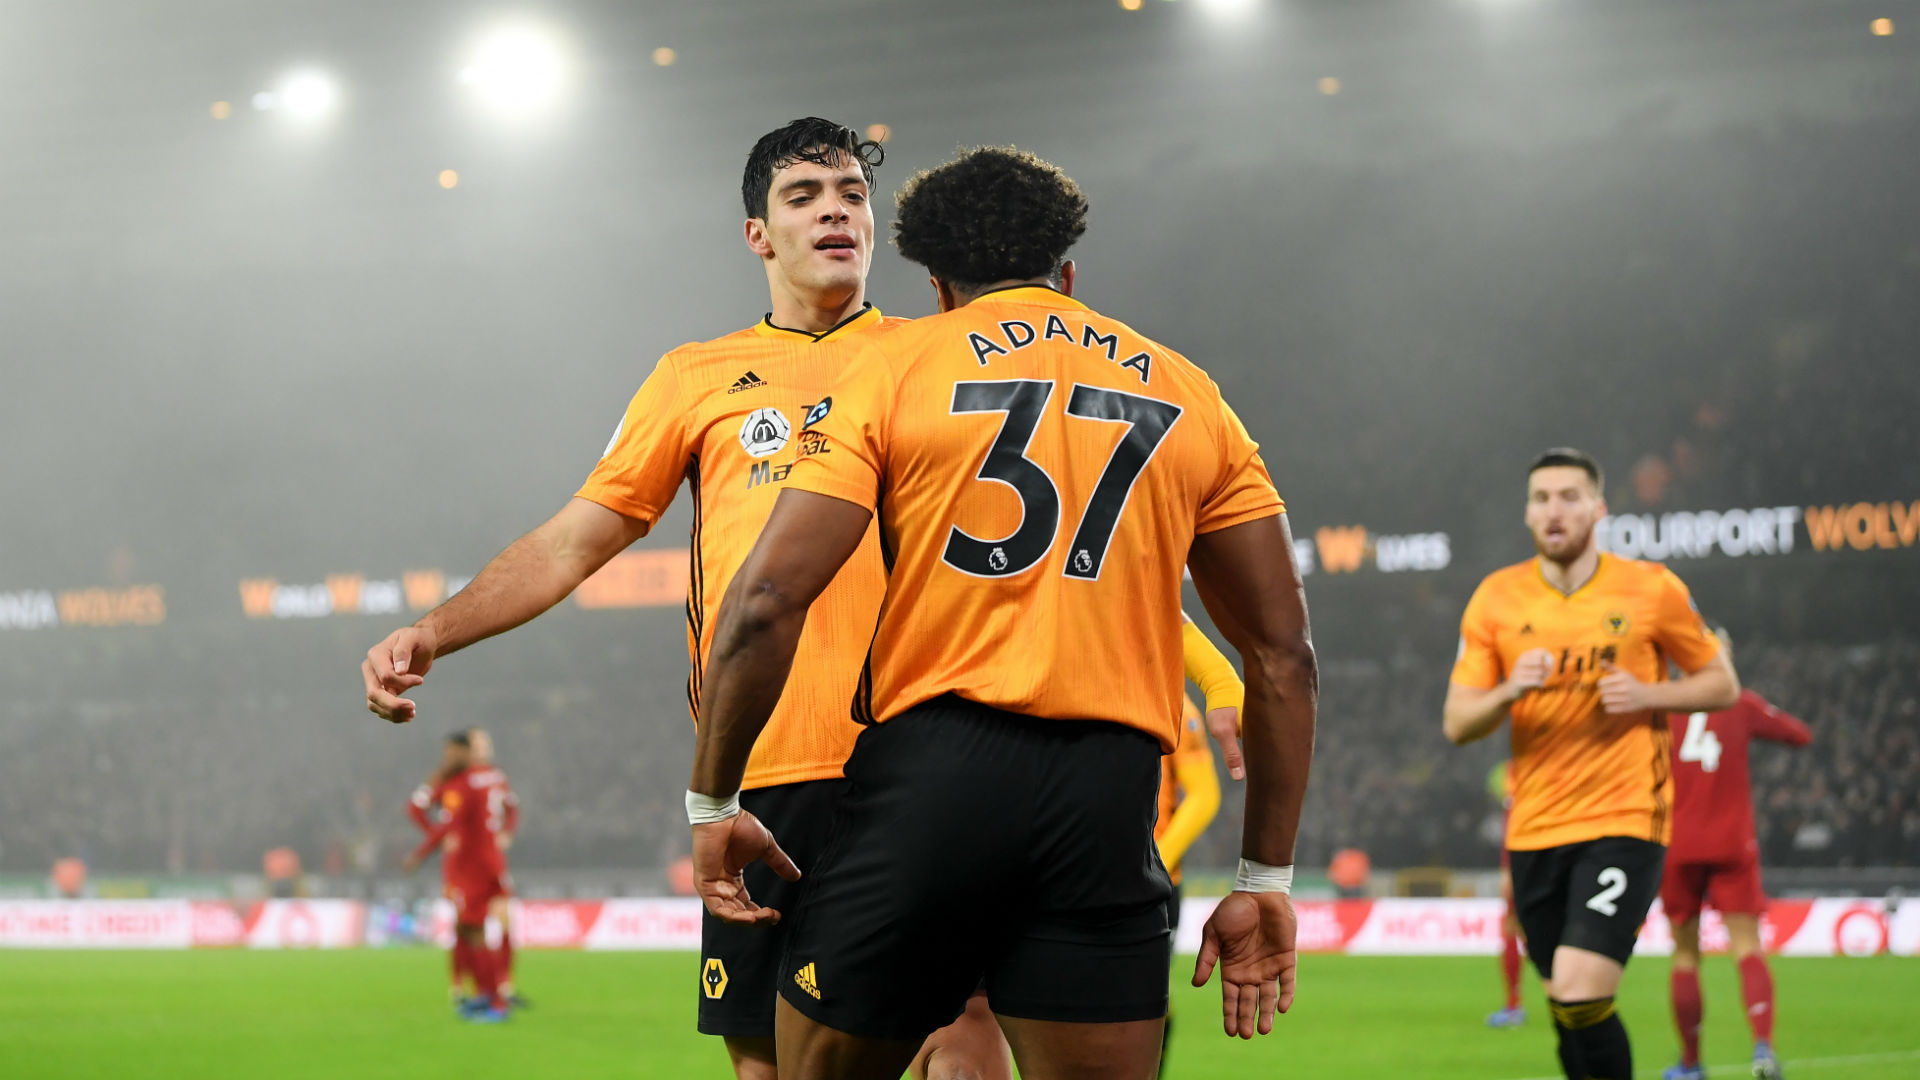 Traore and Jimenez solid partnership continues in Wolves victory over Bournemouth